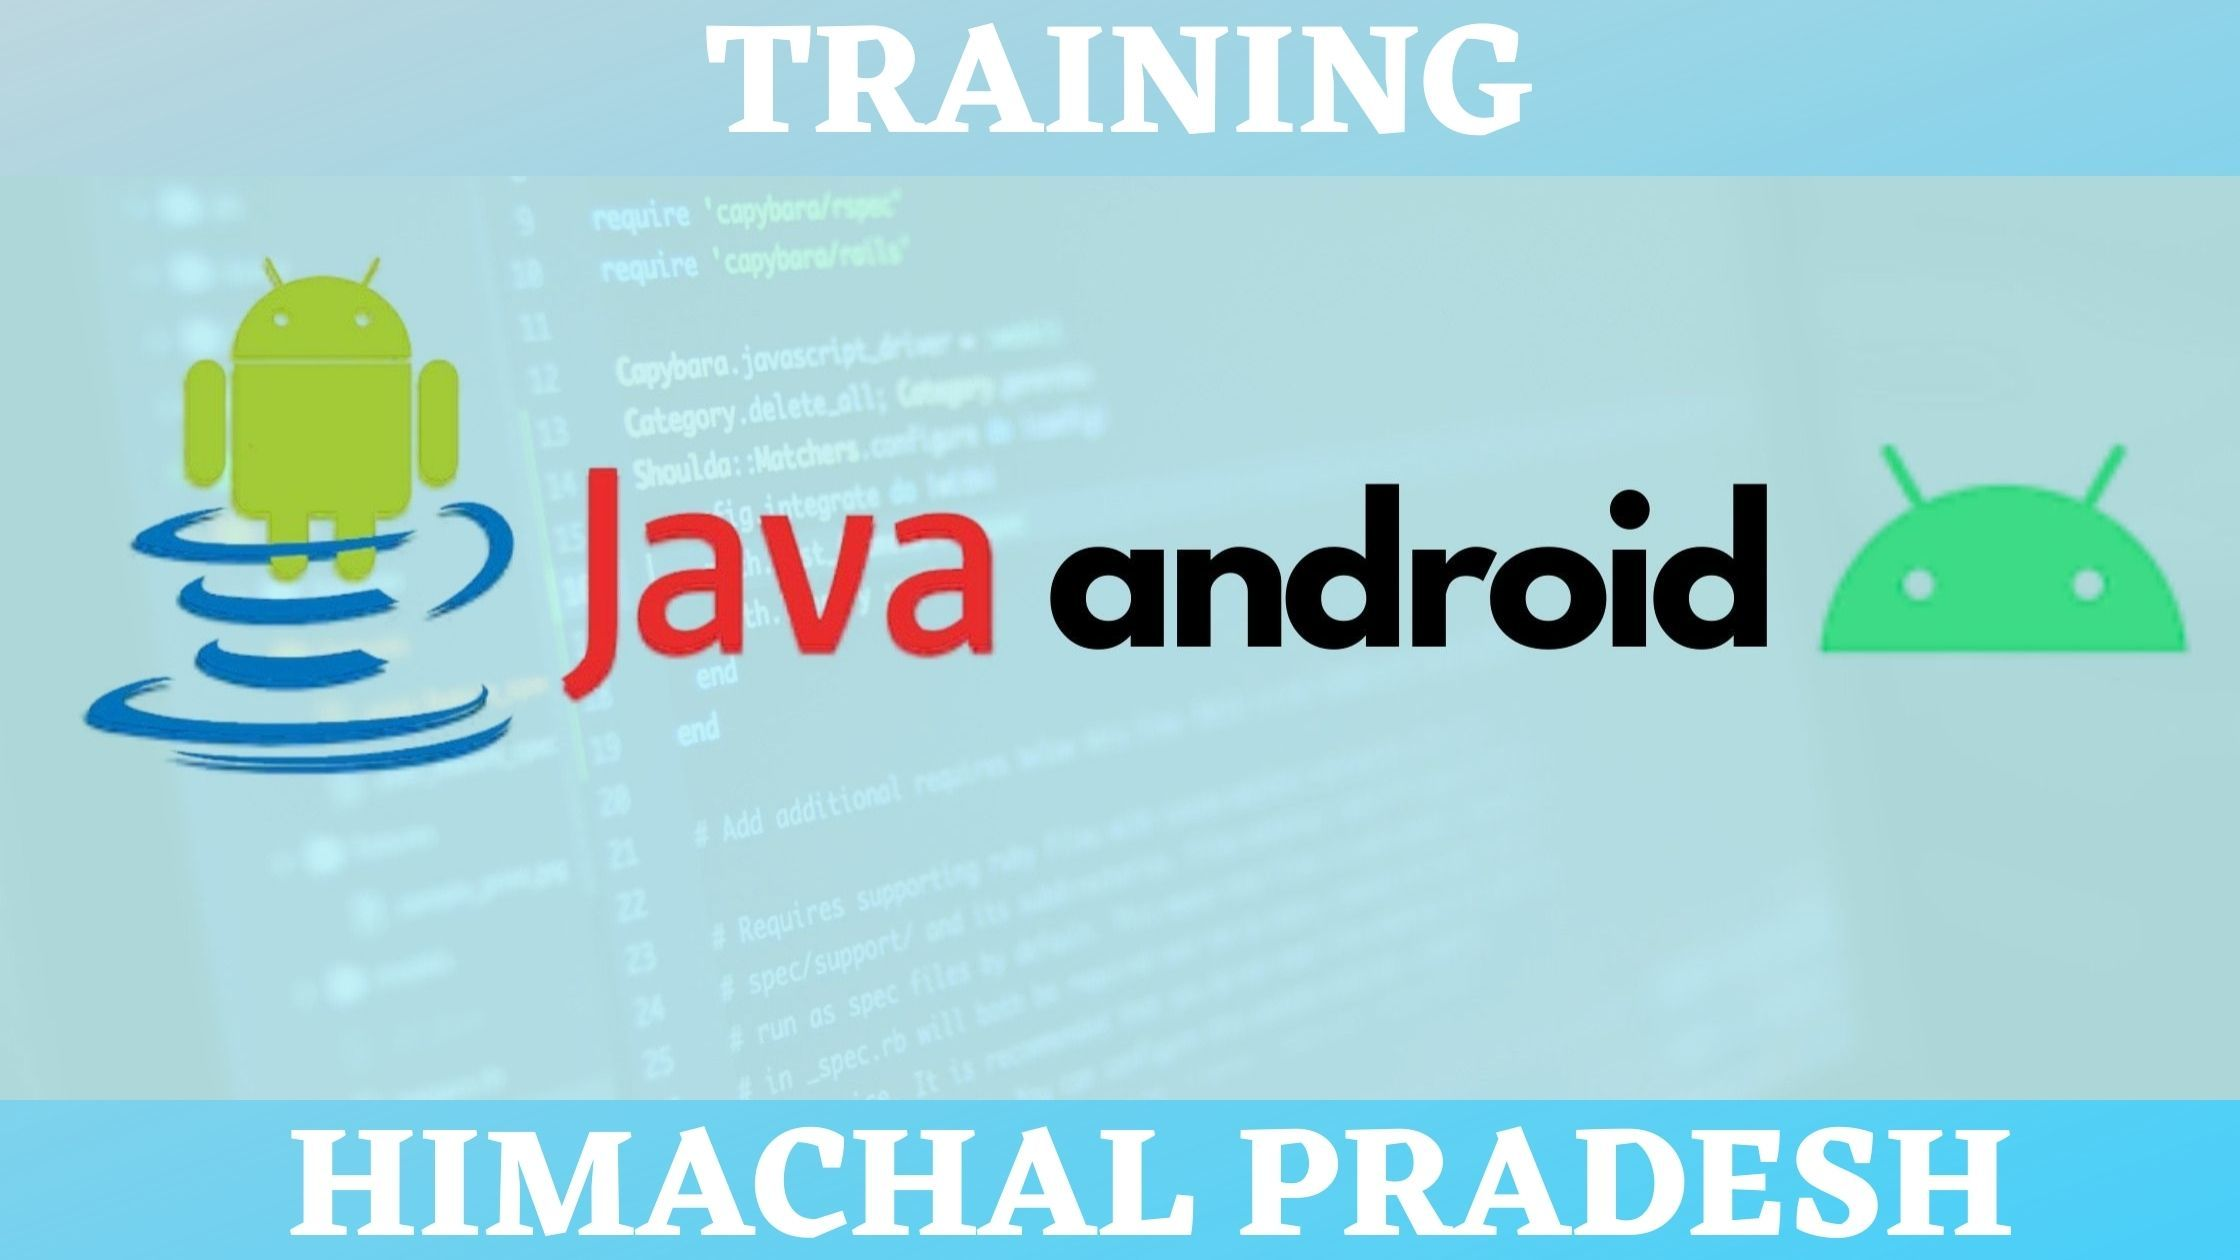 java_android_training_in_himachal_pradesh -background.jpeg